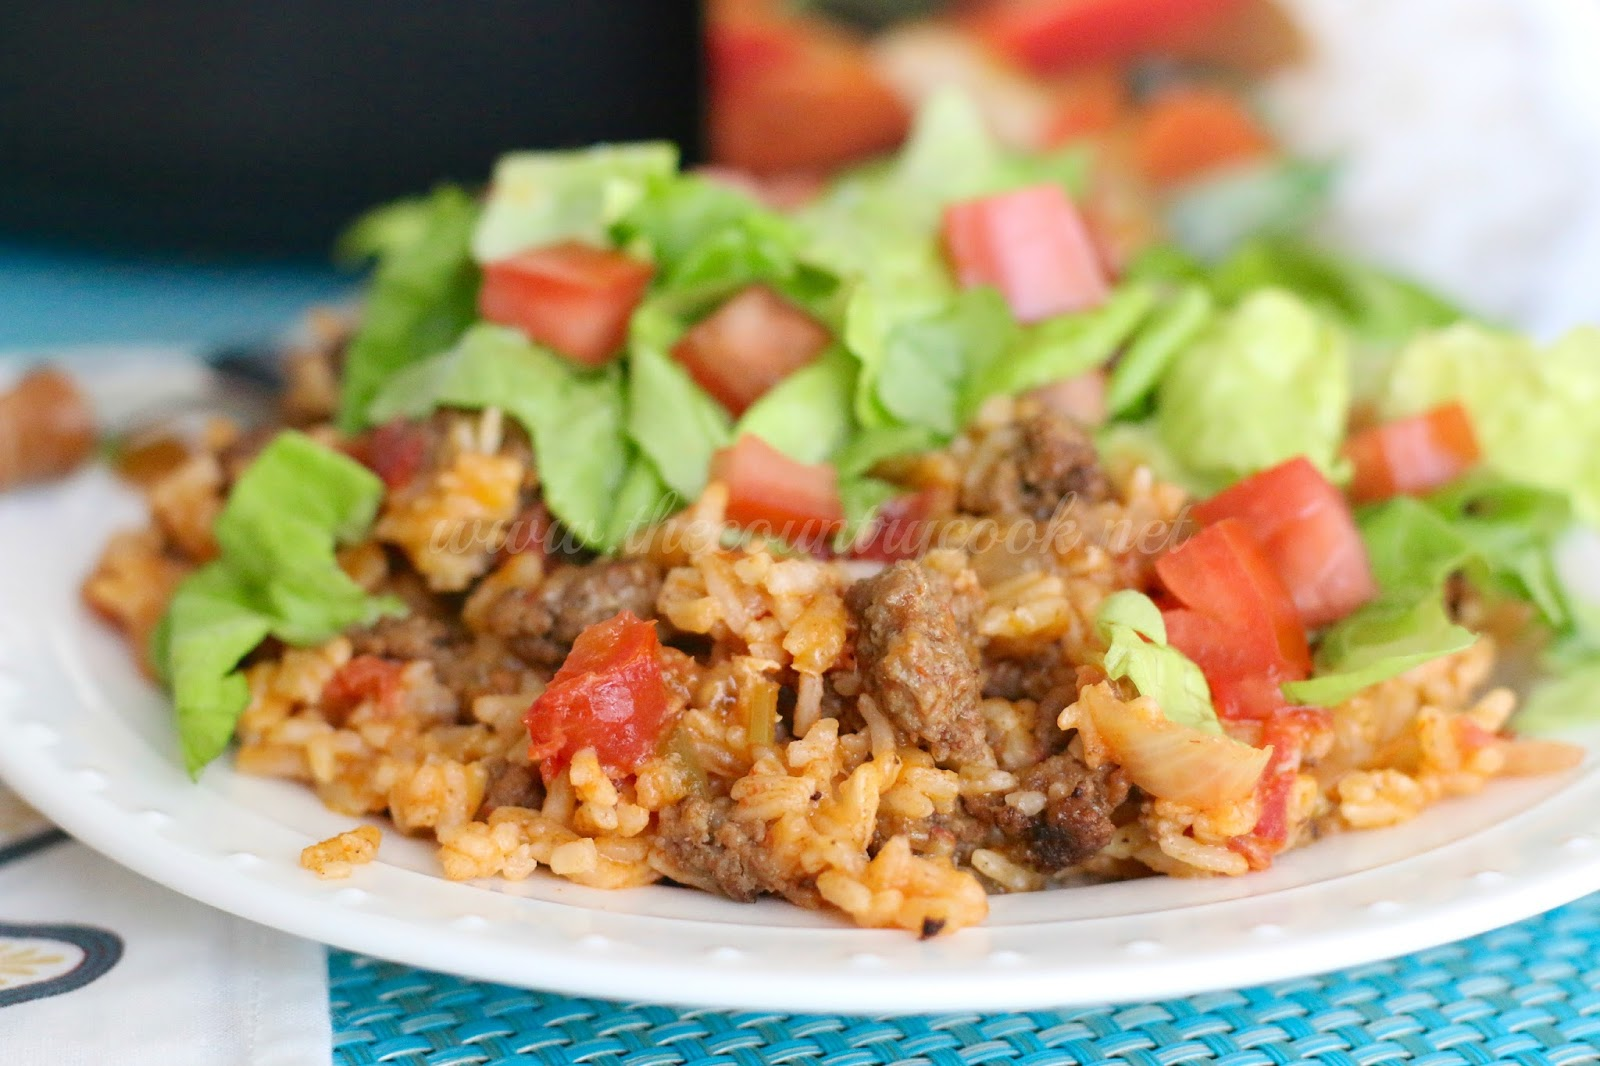 I Love My Moms Spanish Rice So Figured Why Not A Taco Version And Let Me Tell You This Turned Out Crazy Good It Made For Awesome Leftovers